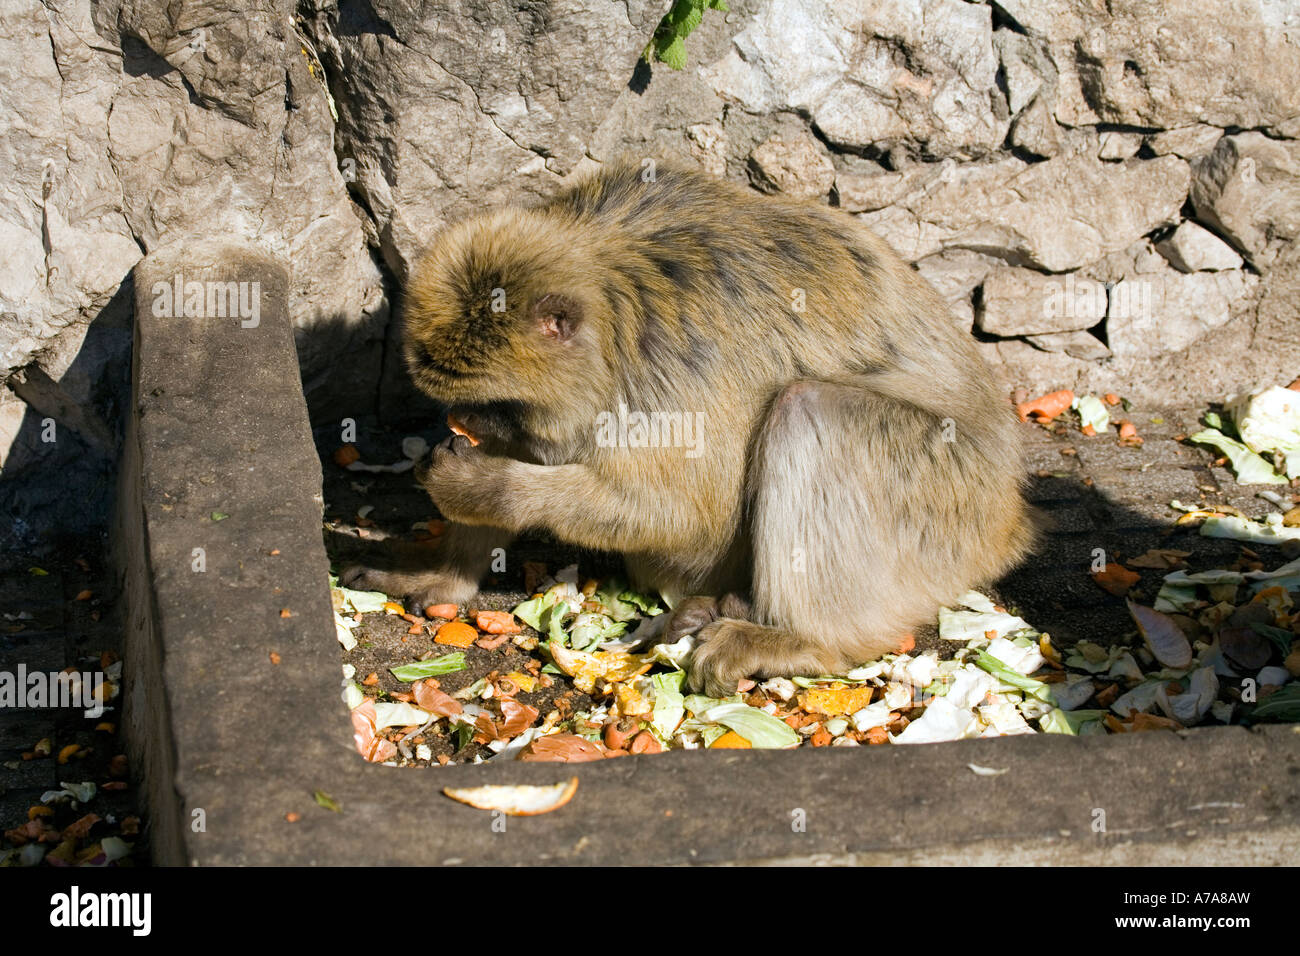 Gibraltar Ape feeding on fruit and vegetable scraps - Stock Image